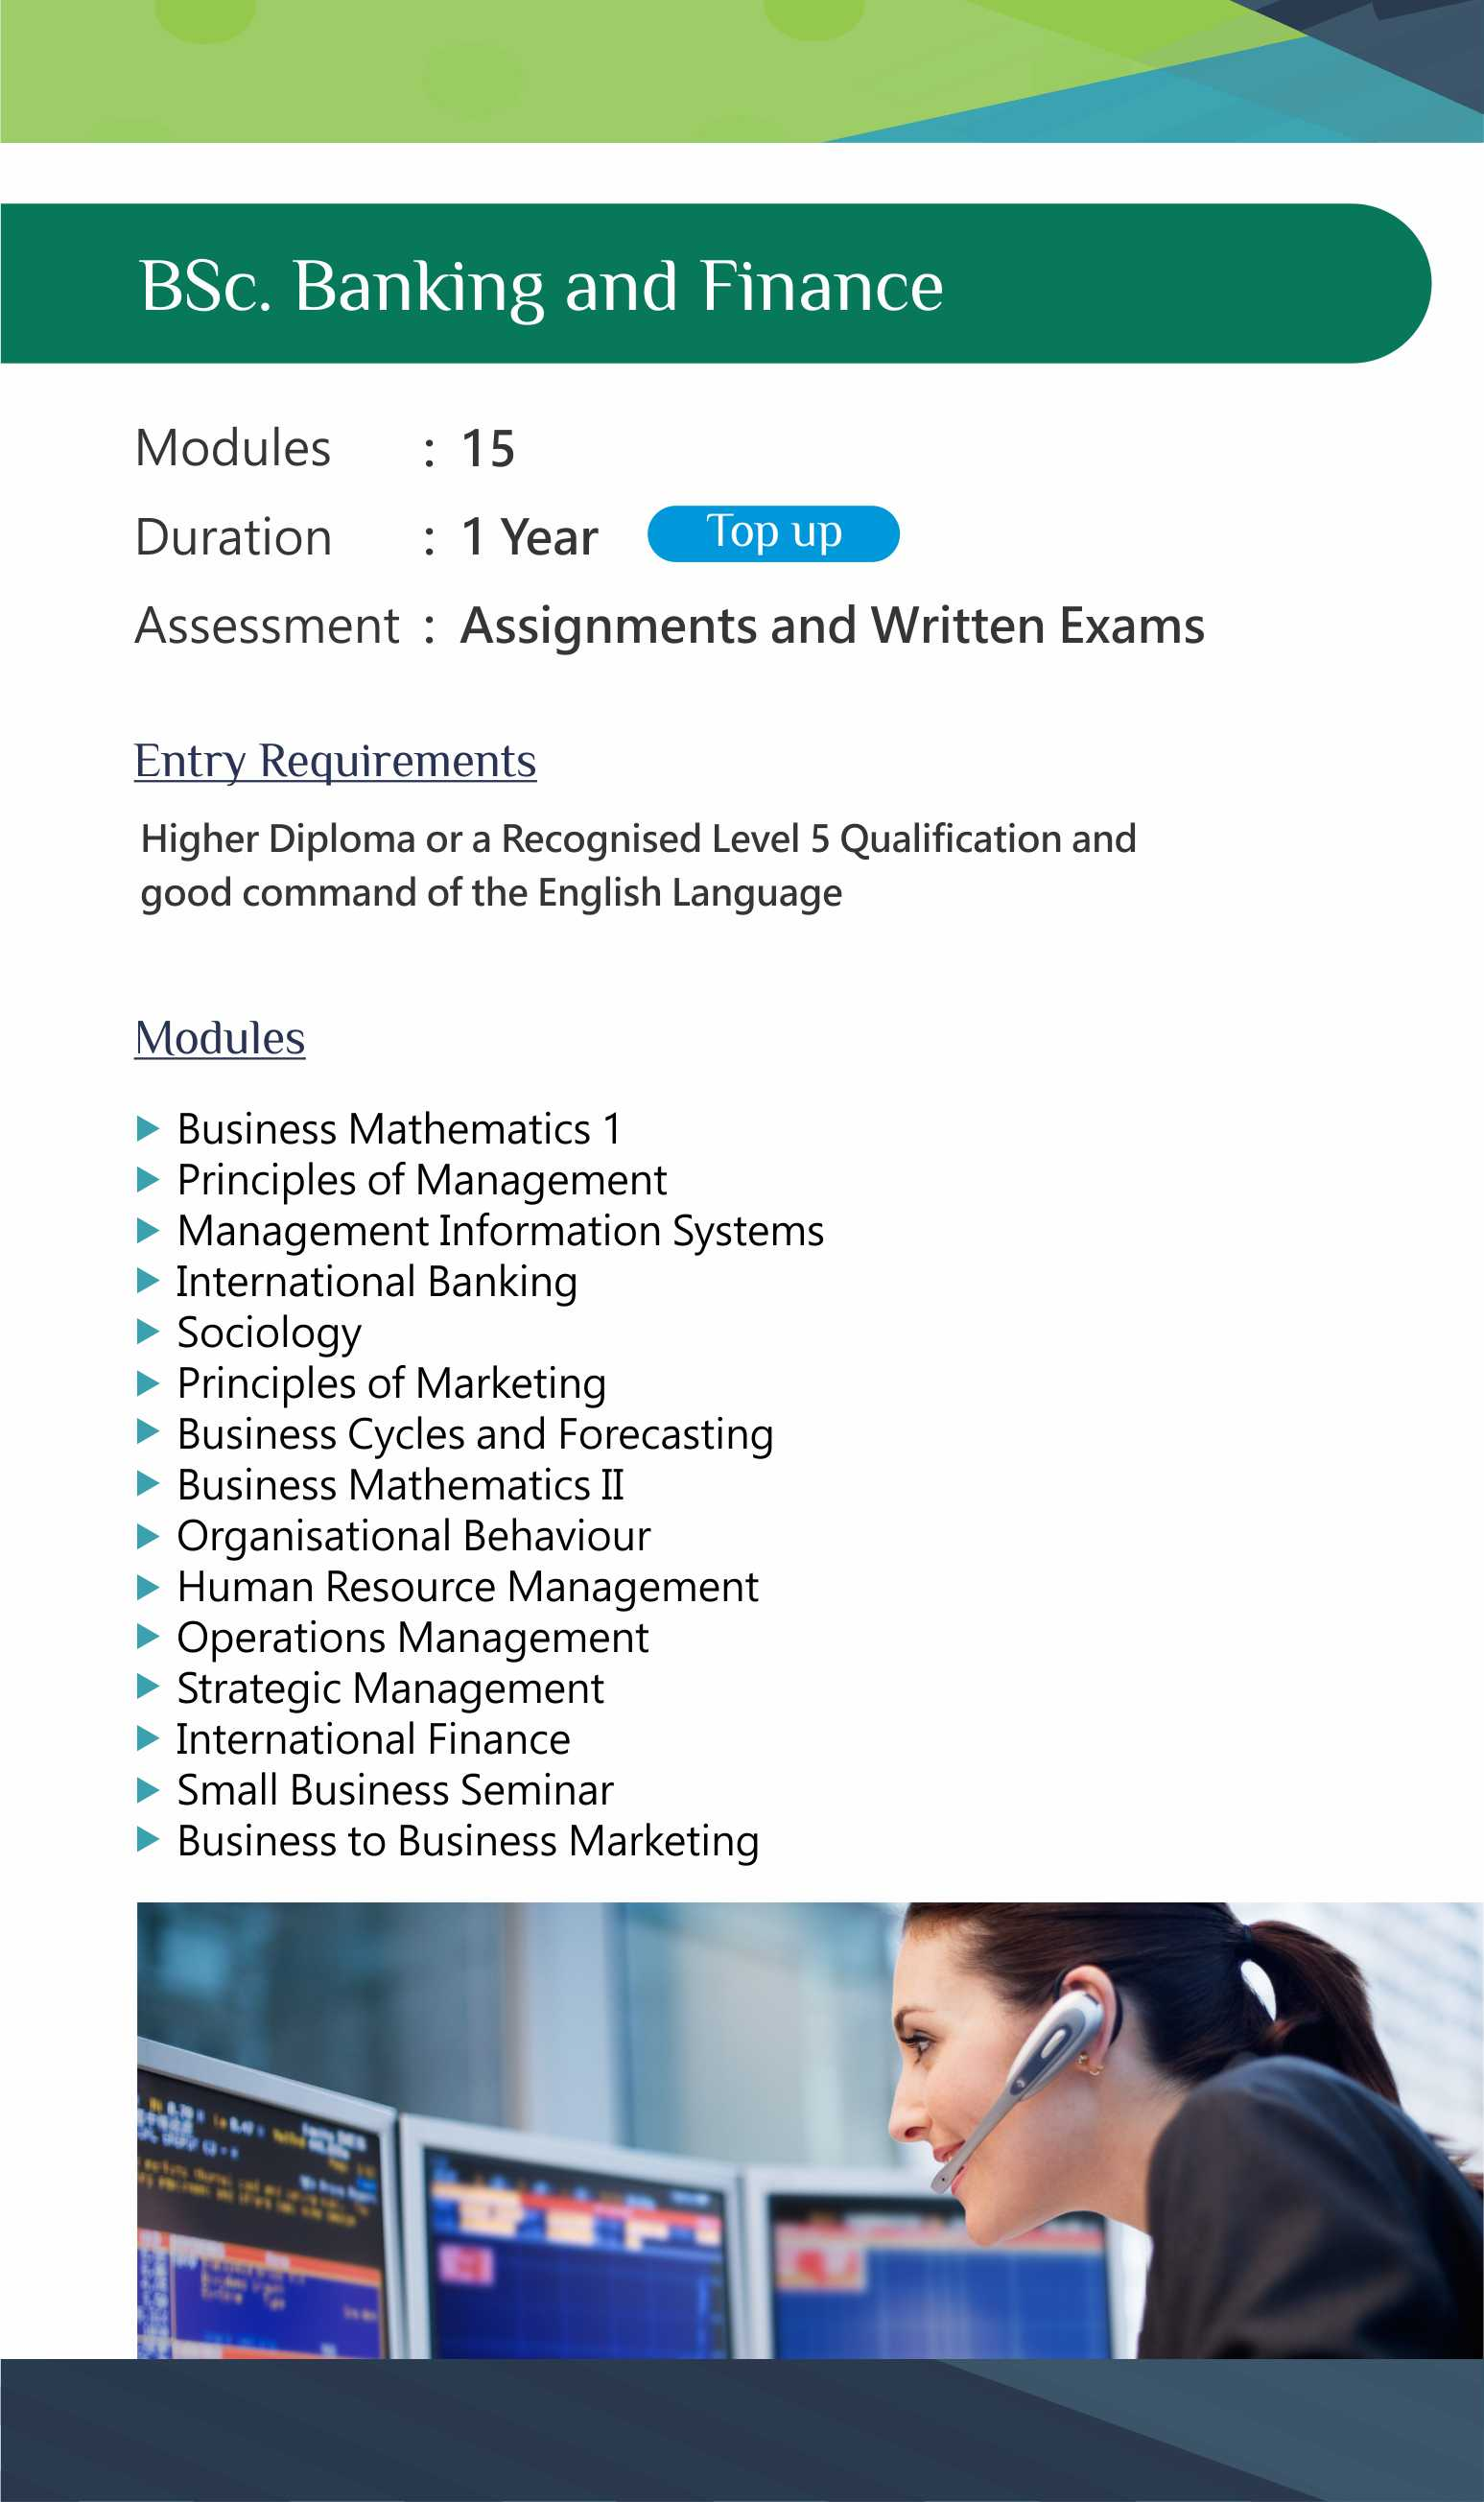 BSc. Banking and Finance (Final Year Top-Up)